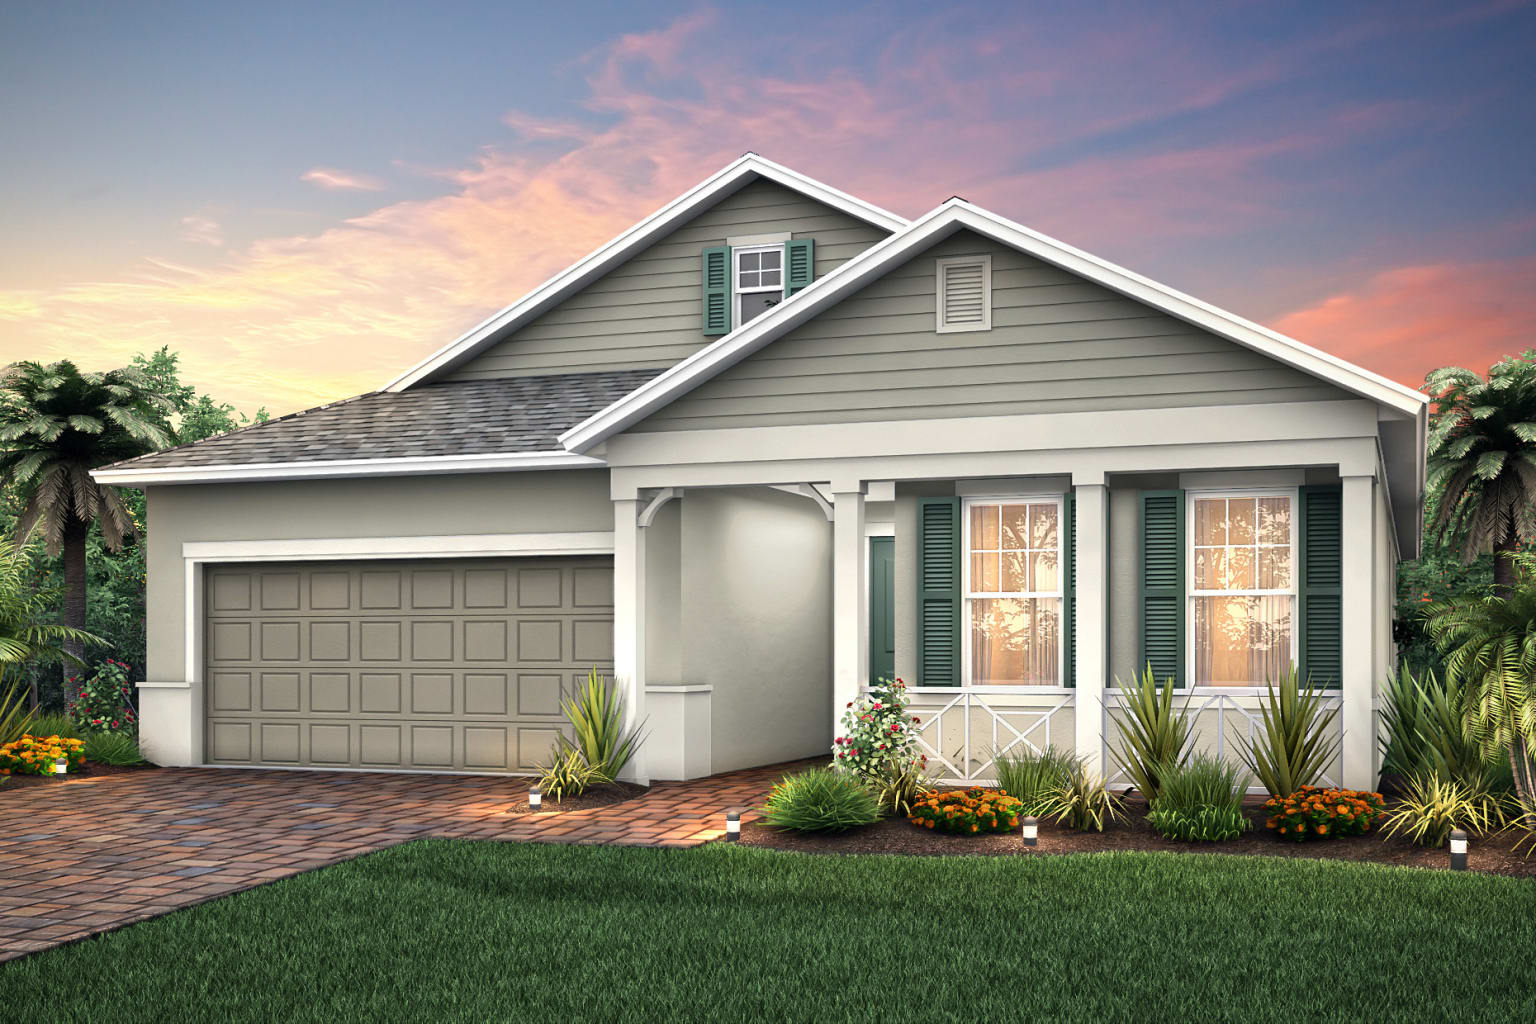 Home Exterior KW2B